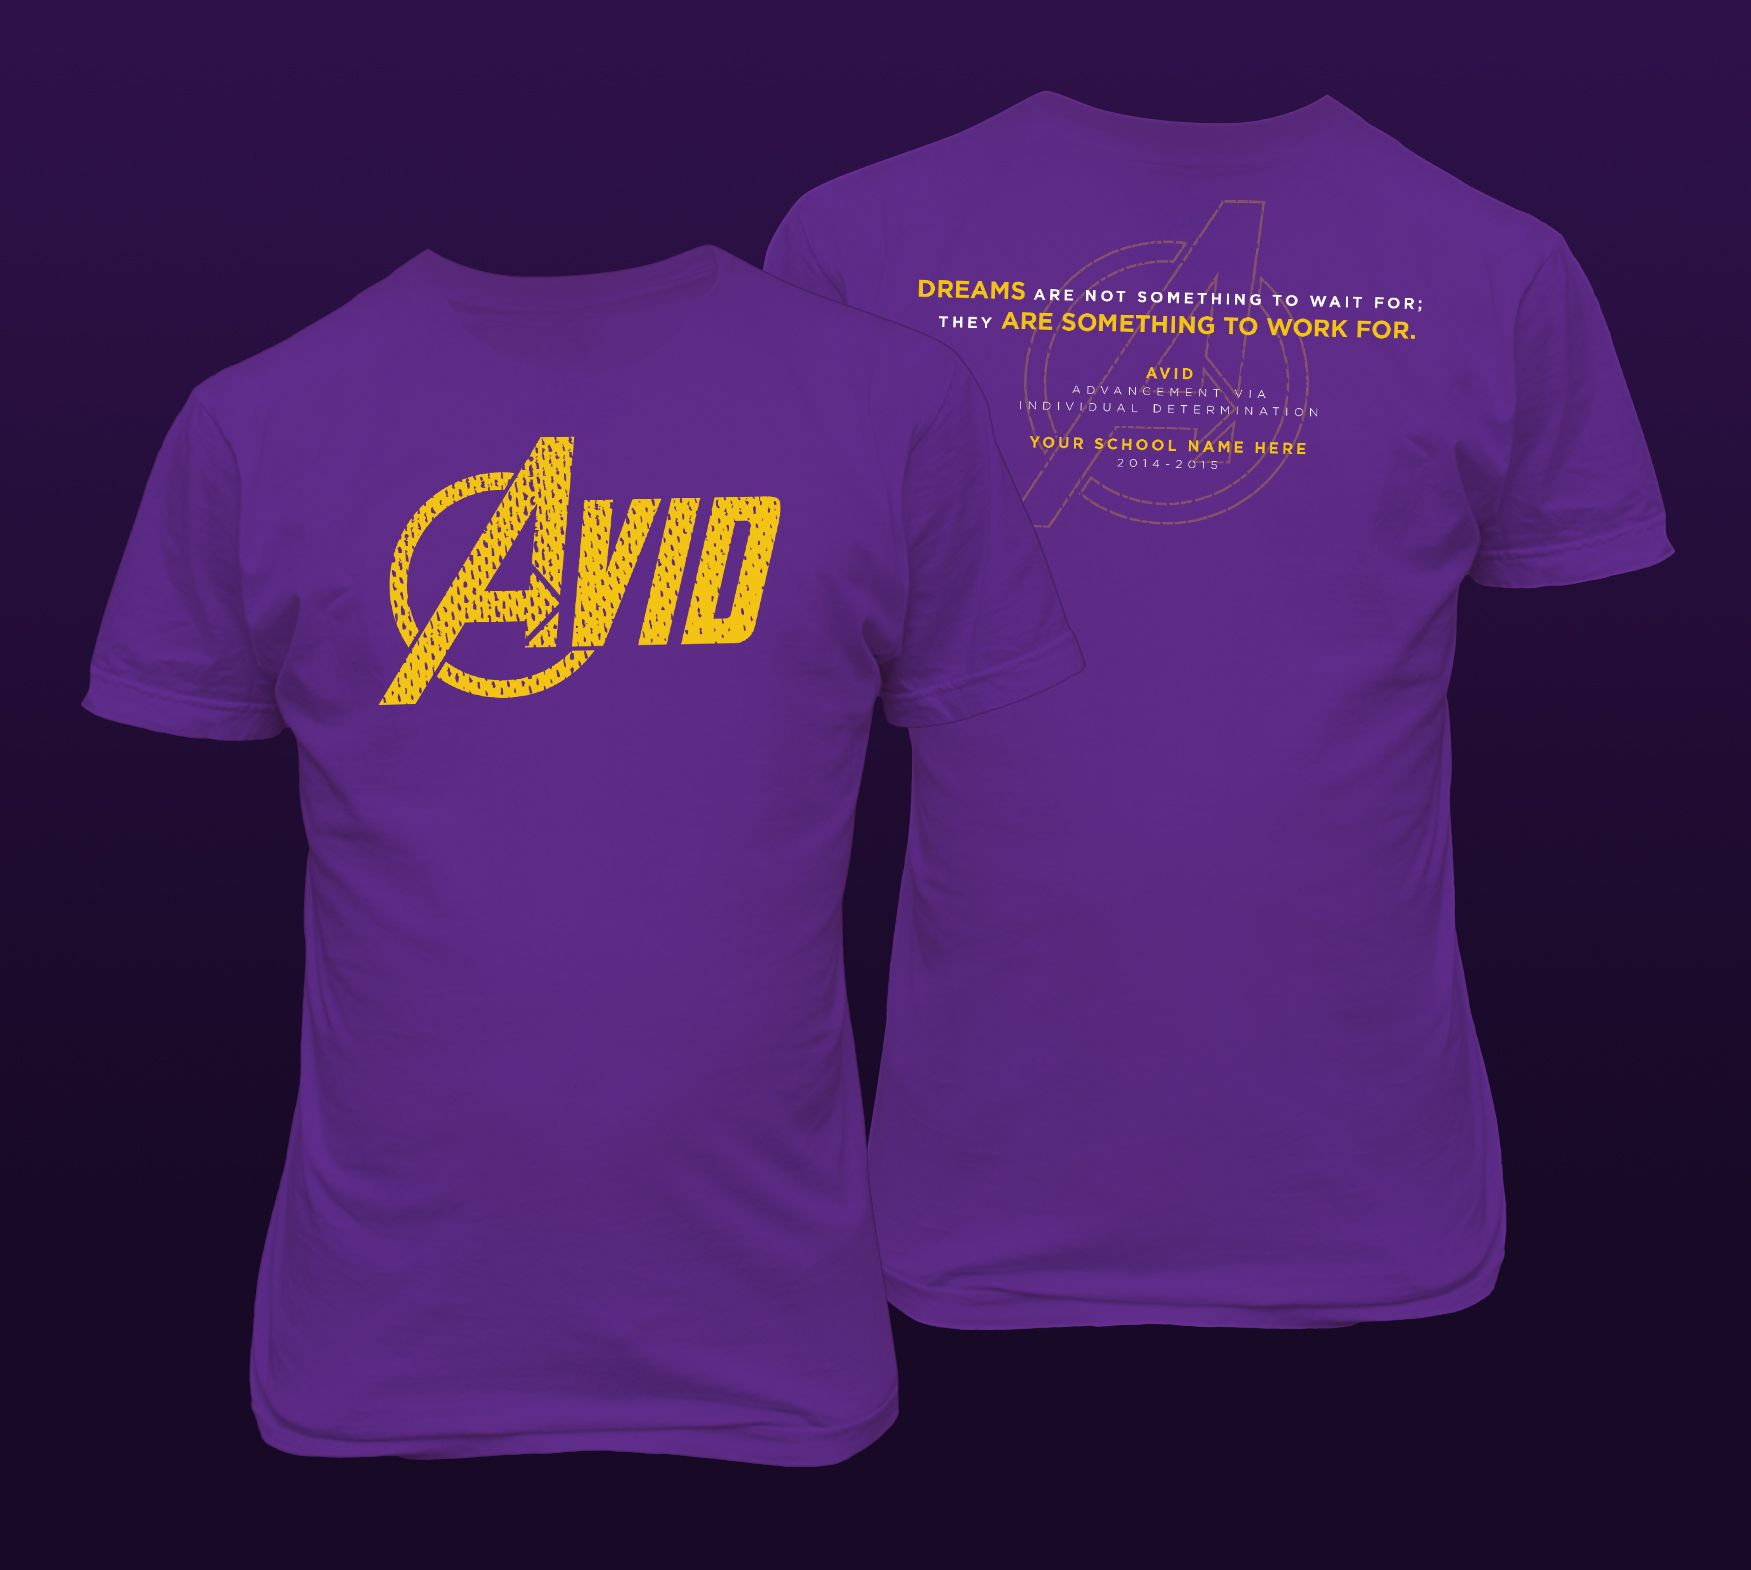 We 39 Ve Designed This T Shirt For The Avid Program As A